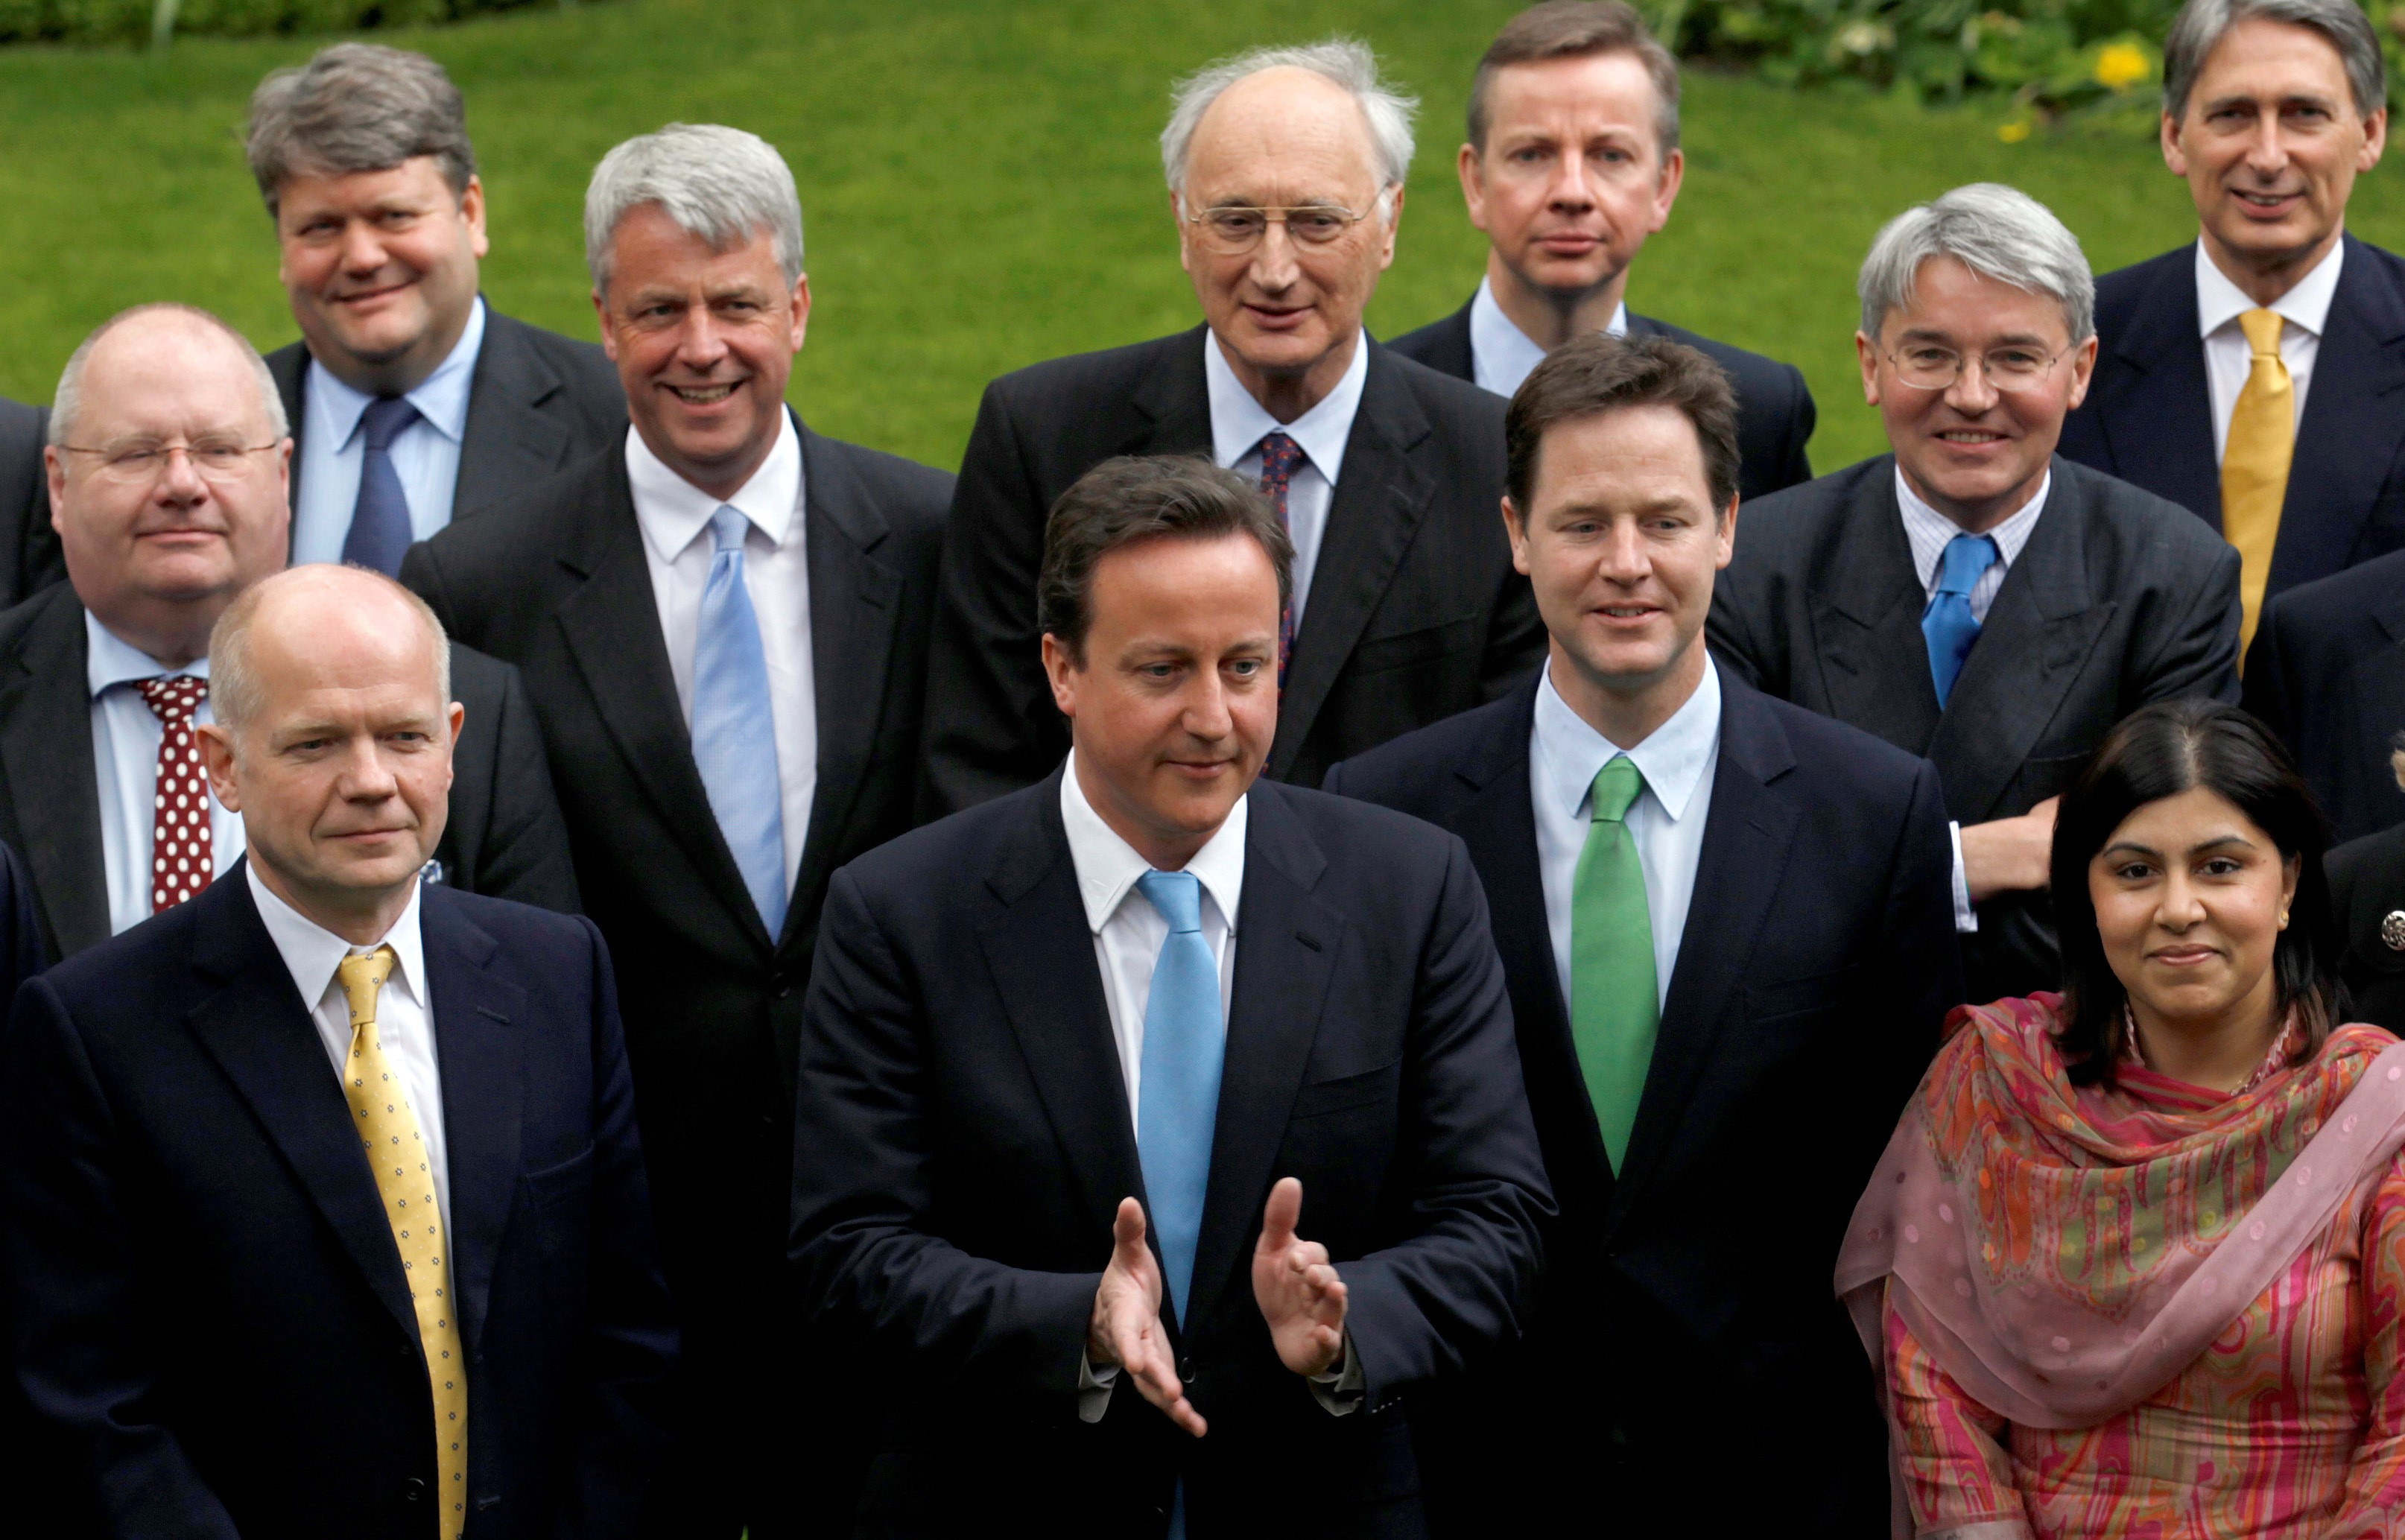 Britain's Prime Minister David Cameron in a group picture with his new cabinet in the garden of 10 Downing Street in London May,2010 (Reuters)